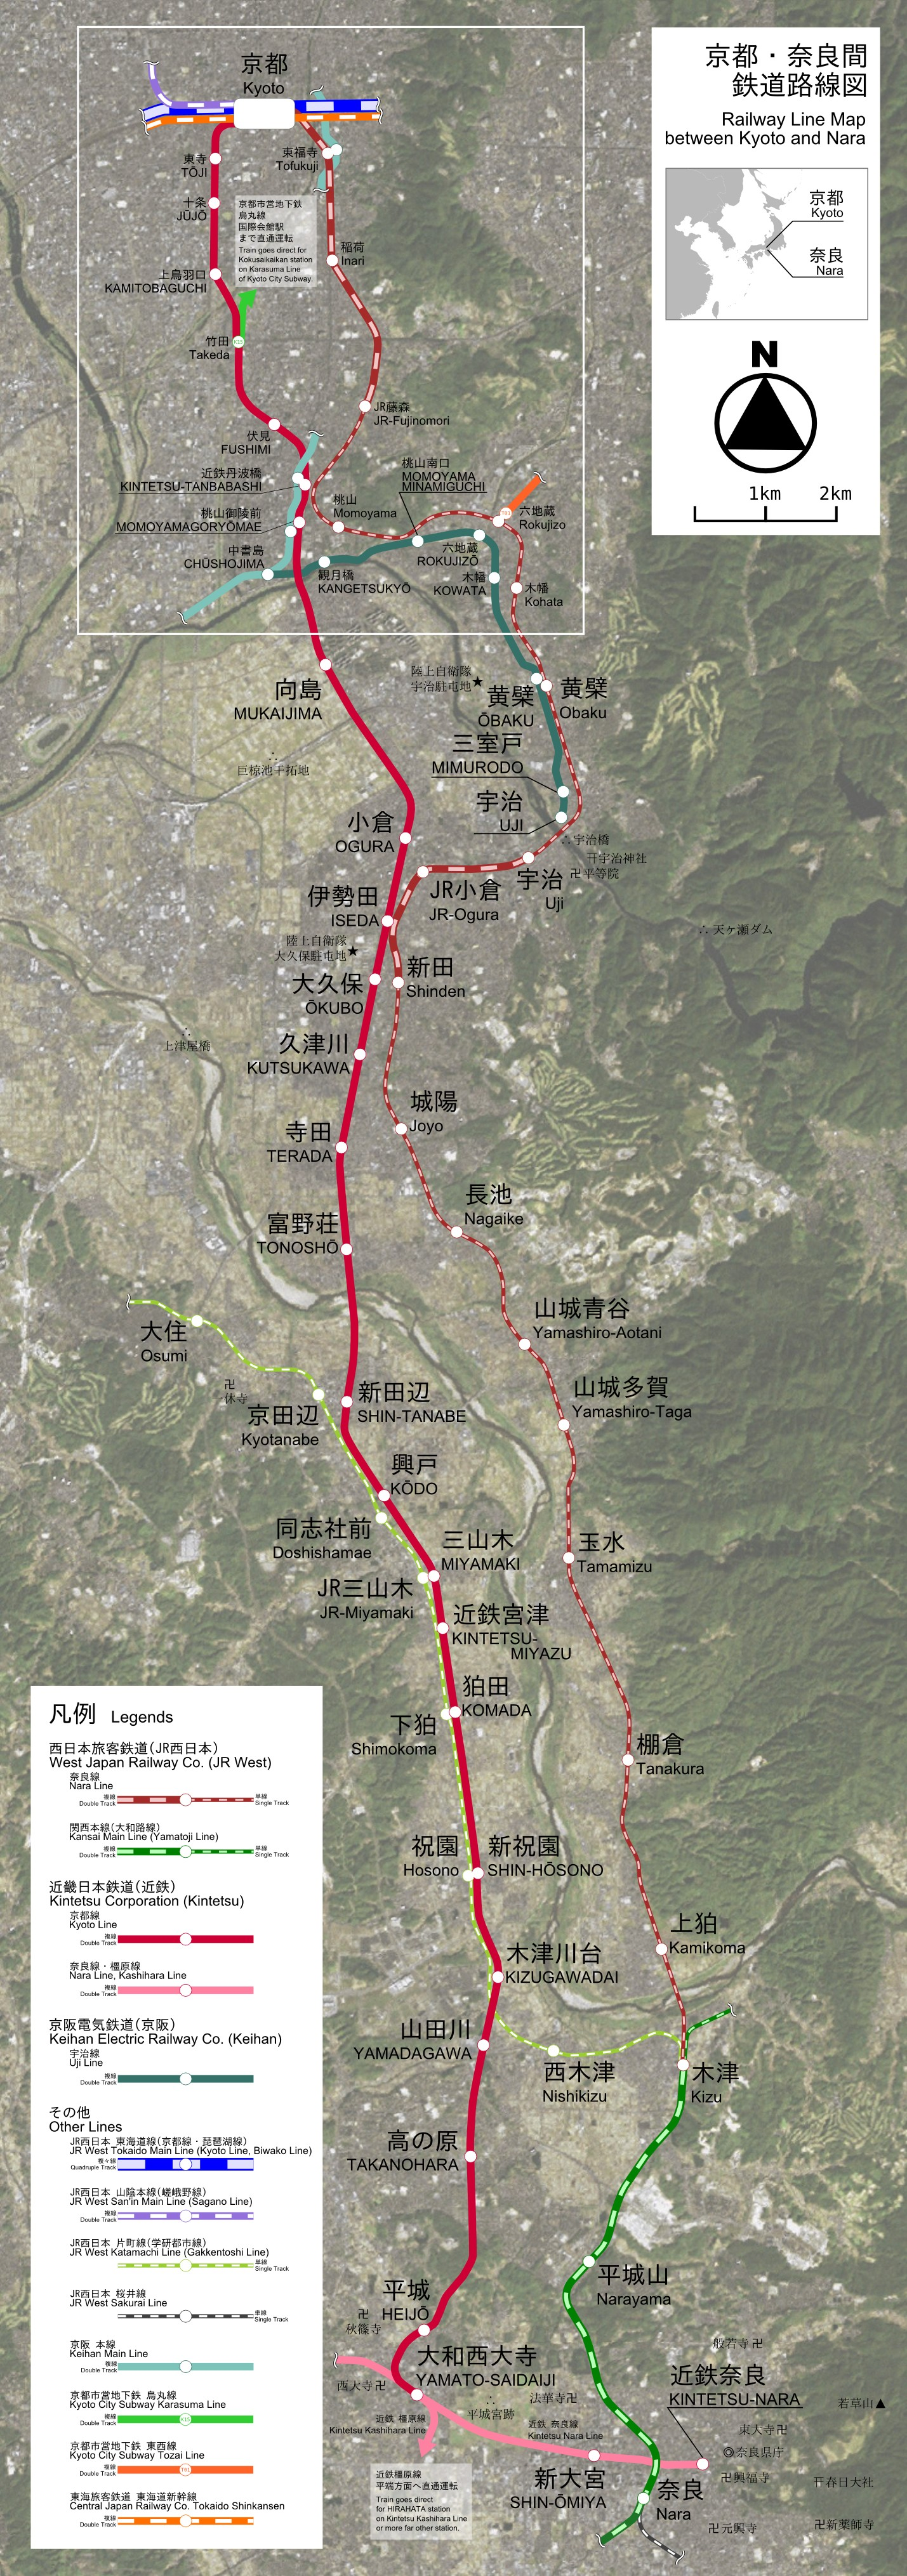 https://upload.wikimedia.org/wikipedia/commons/d/d3/Kyoto-Nara_Railway_Line_Map.jpg